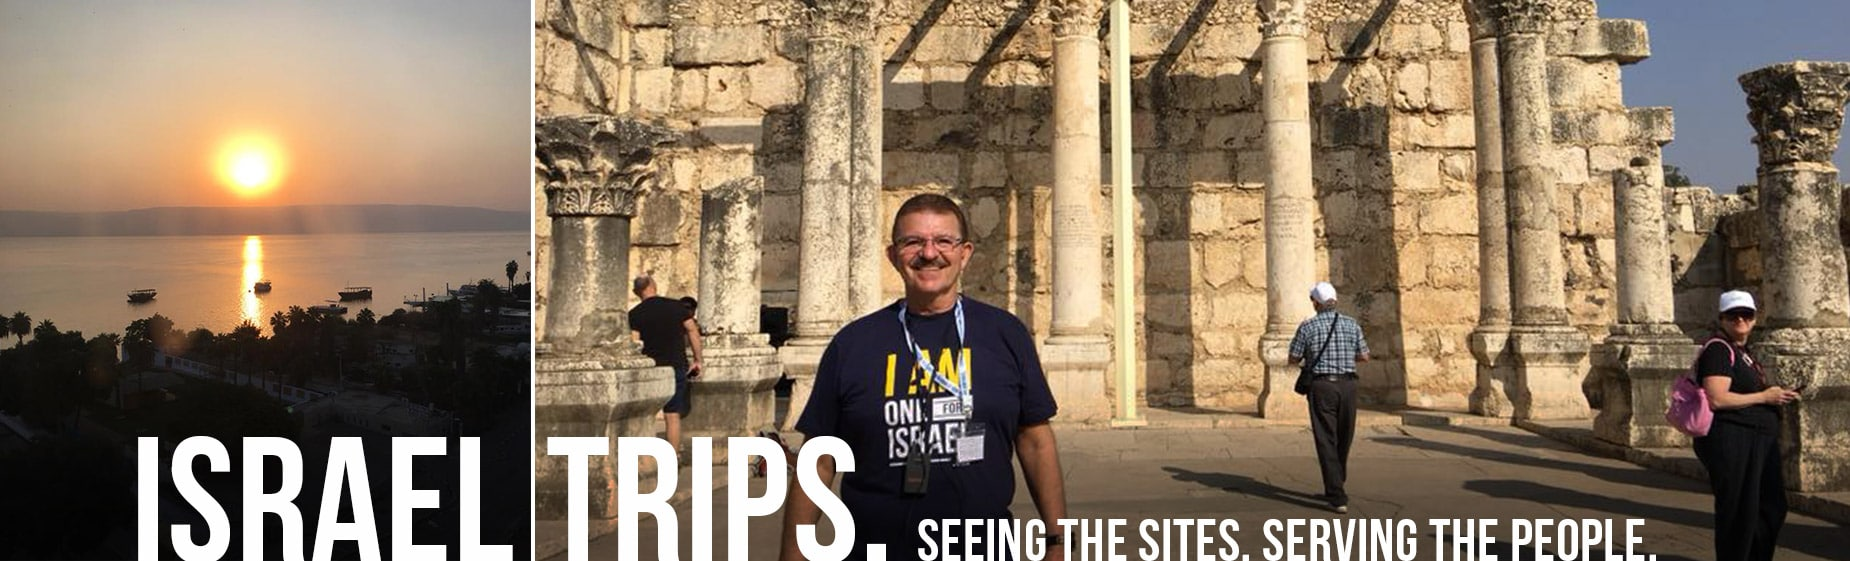 Israel Trips with ONE FOR ISRAEL